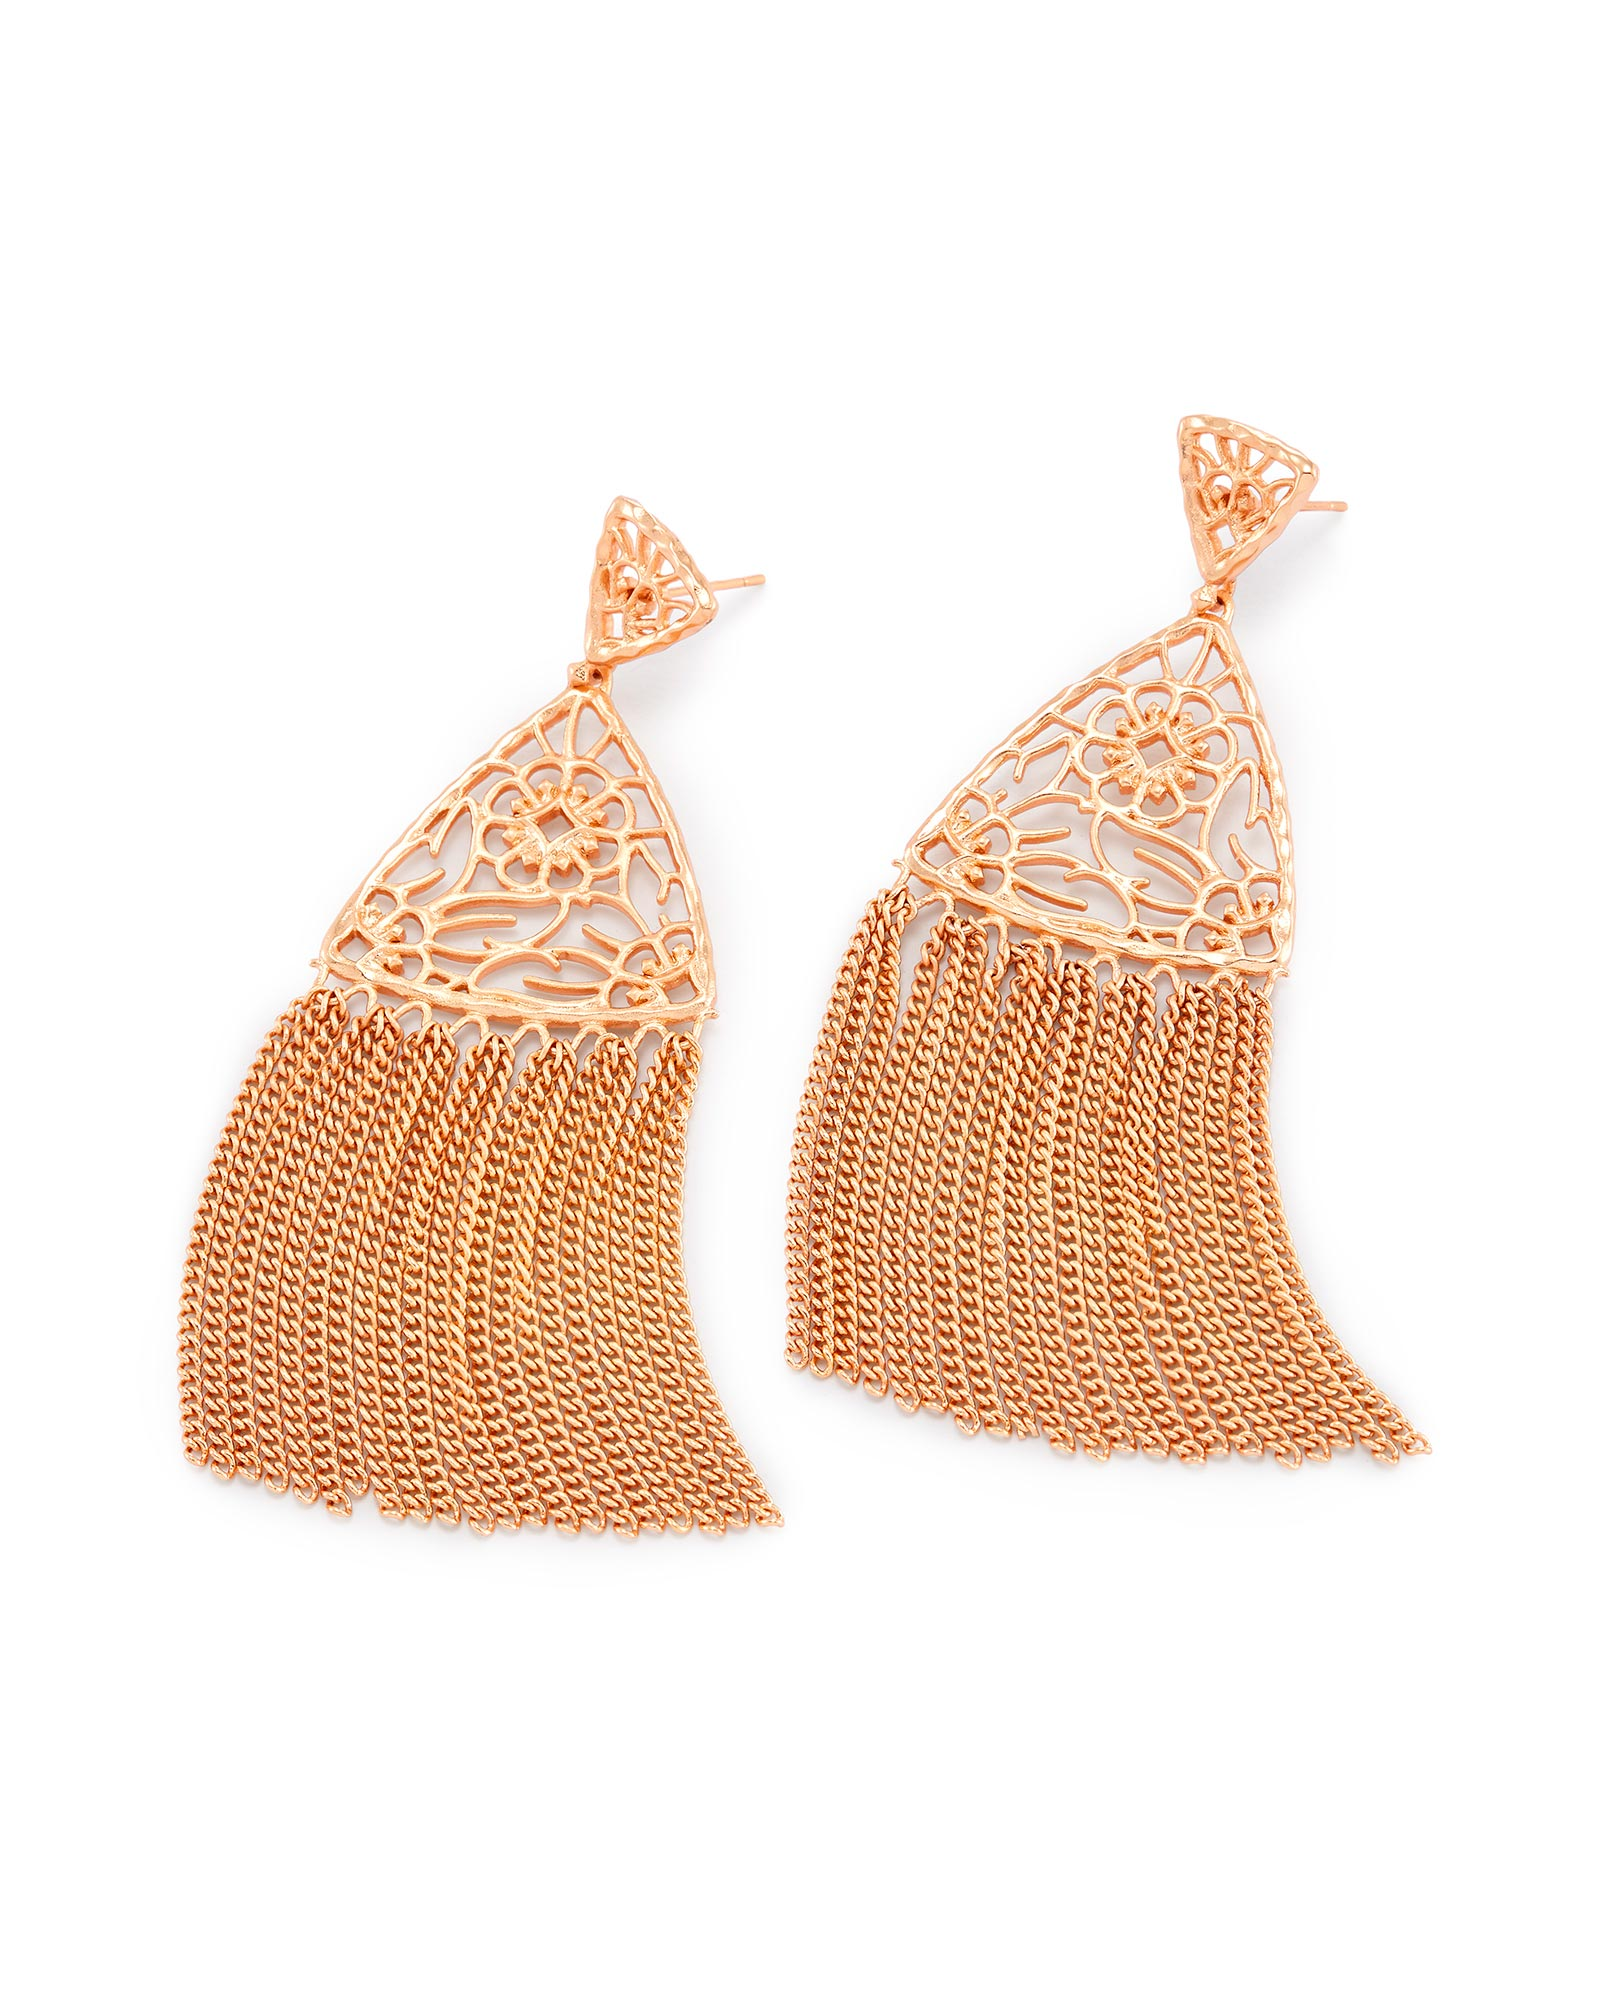 Ana Statement Earrings in Rose Gold